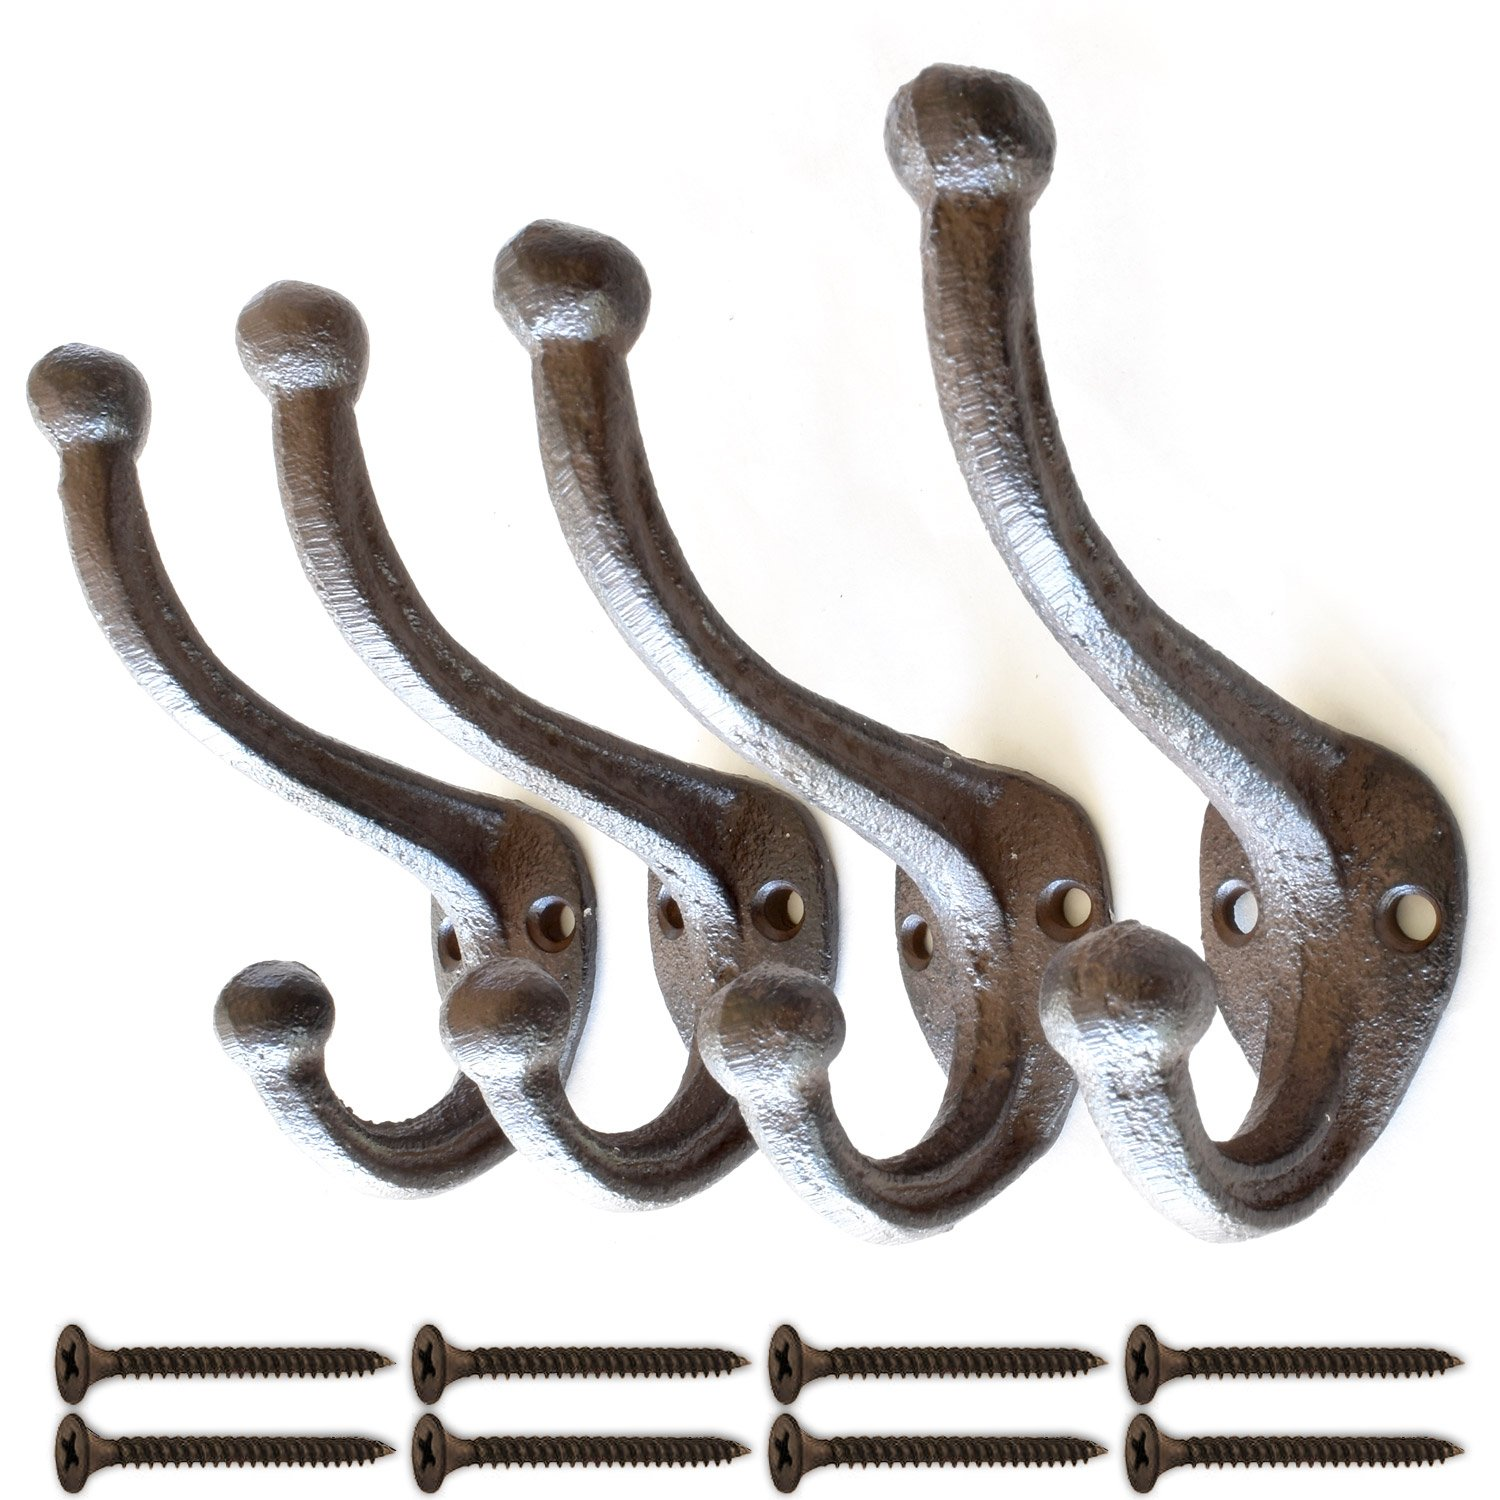 Set of 4 Rustic, Cast Iron, Wall Mounted Hooks, Vintage Inspired, Perfect for Coats, Bags, Hats, Towels, Scarfs and more | Screws Included | by My Fancy Farmhouse (Large Simple, Dark Brown/Black)